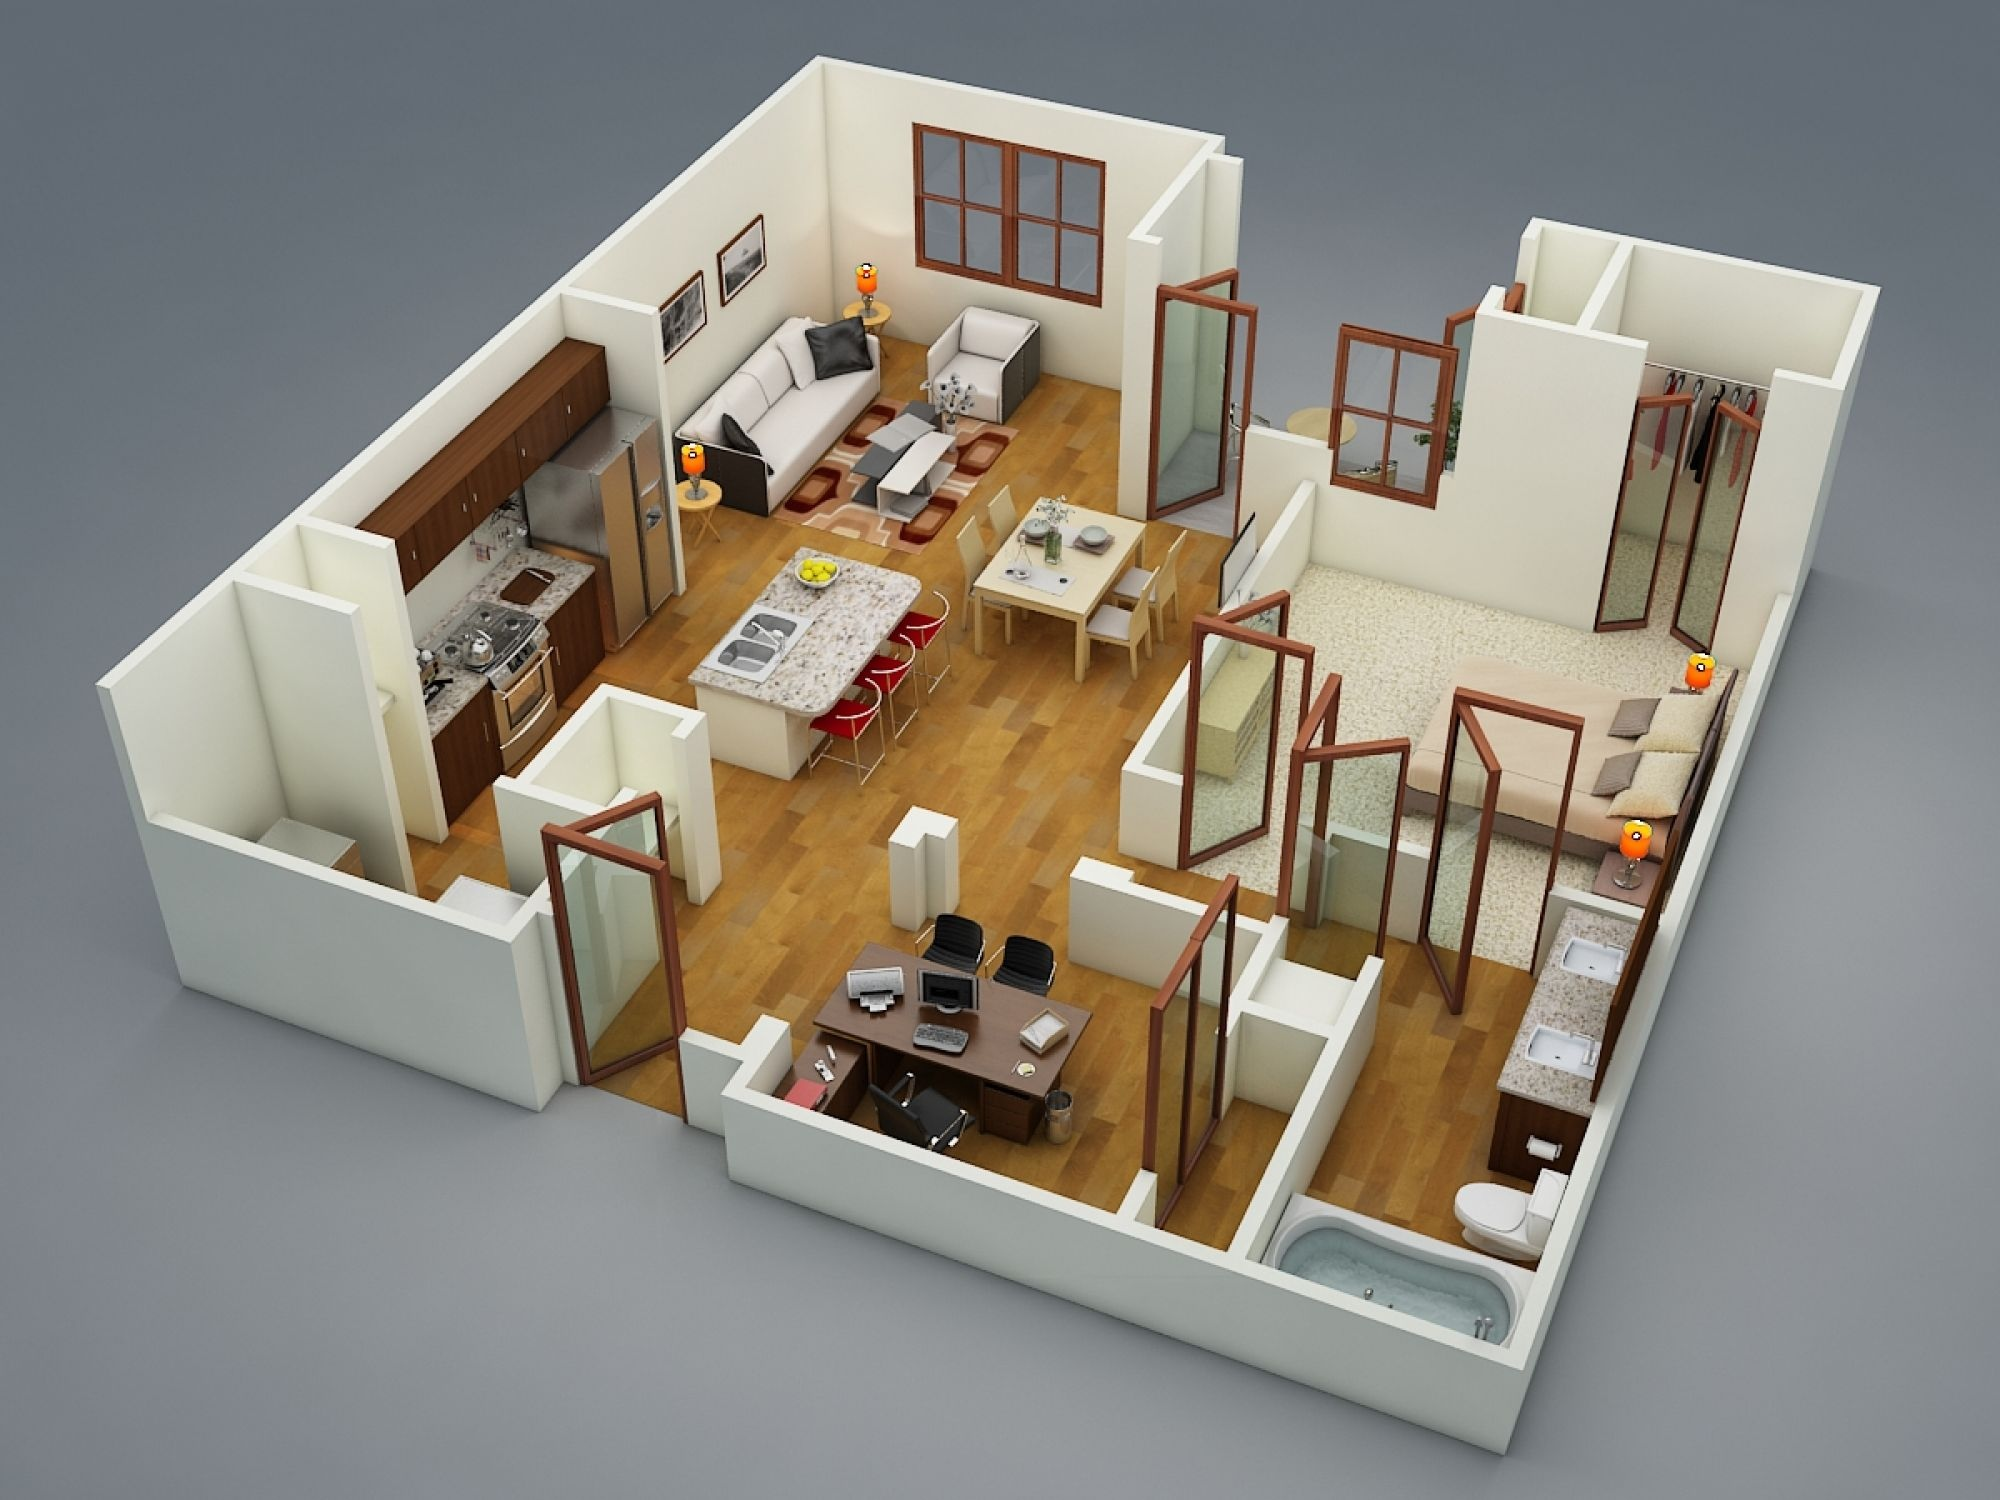 50 one 1 bedroom apartment house plans architecture for Home interior design ideas mumbai flats